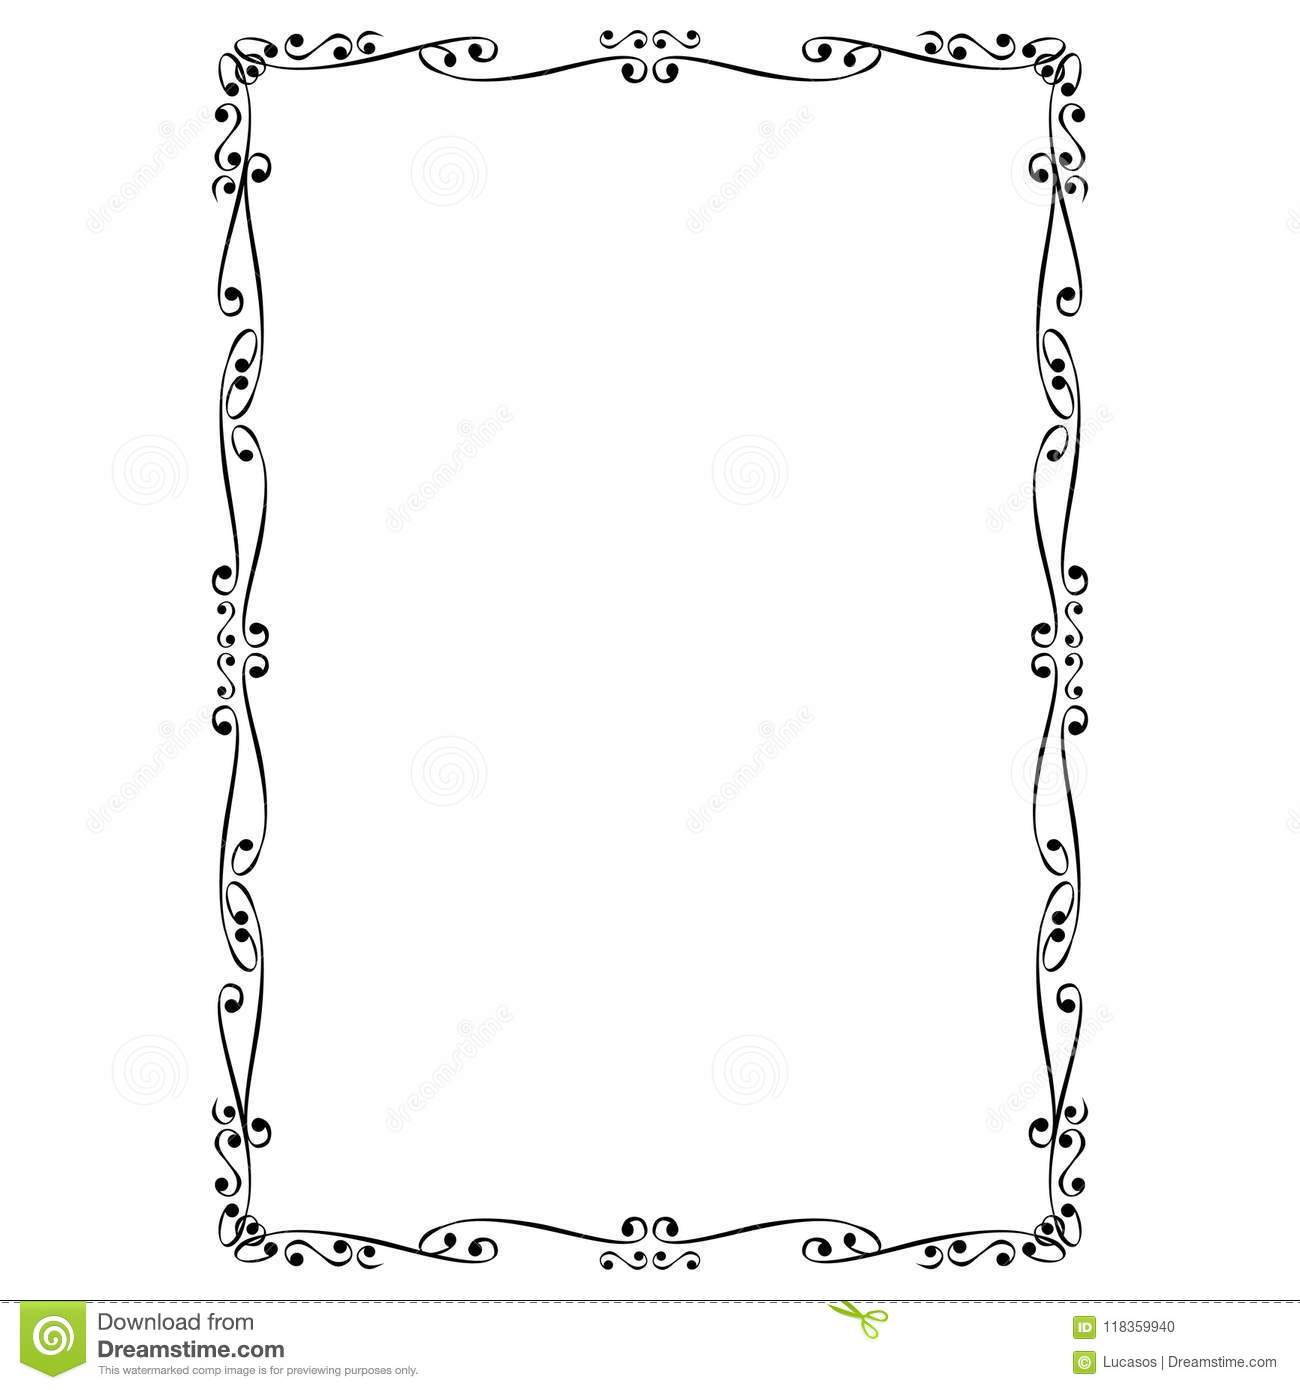 Decorative Frame And Border Stock Vector - Illustration of frames ...